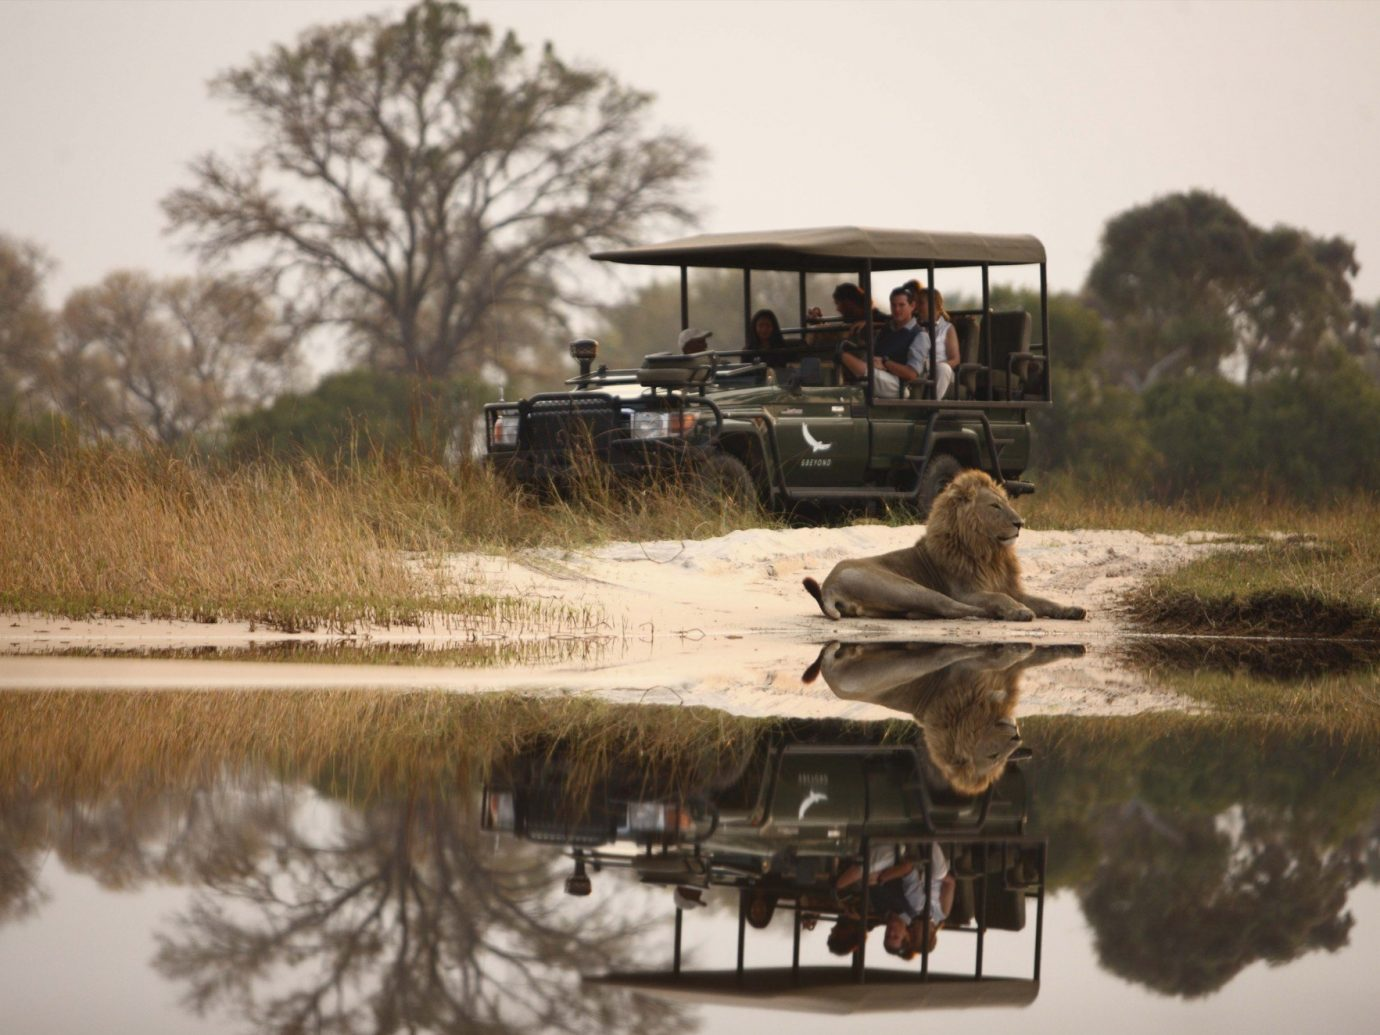 andBeyond Sandibe Okavango Safari Lounge, Botswana Lion in Africa